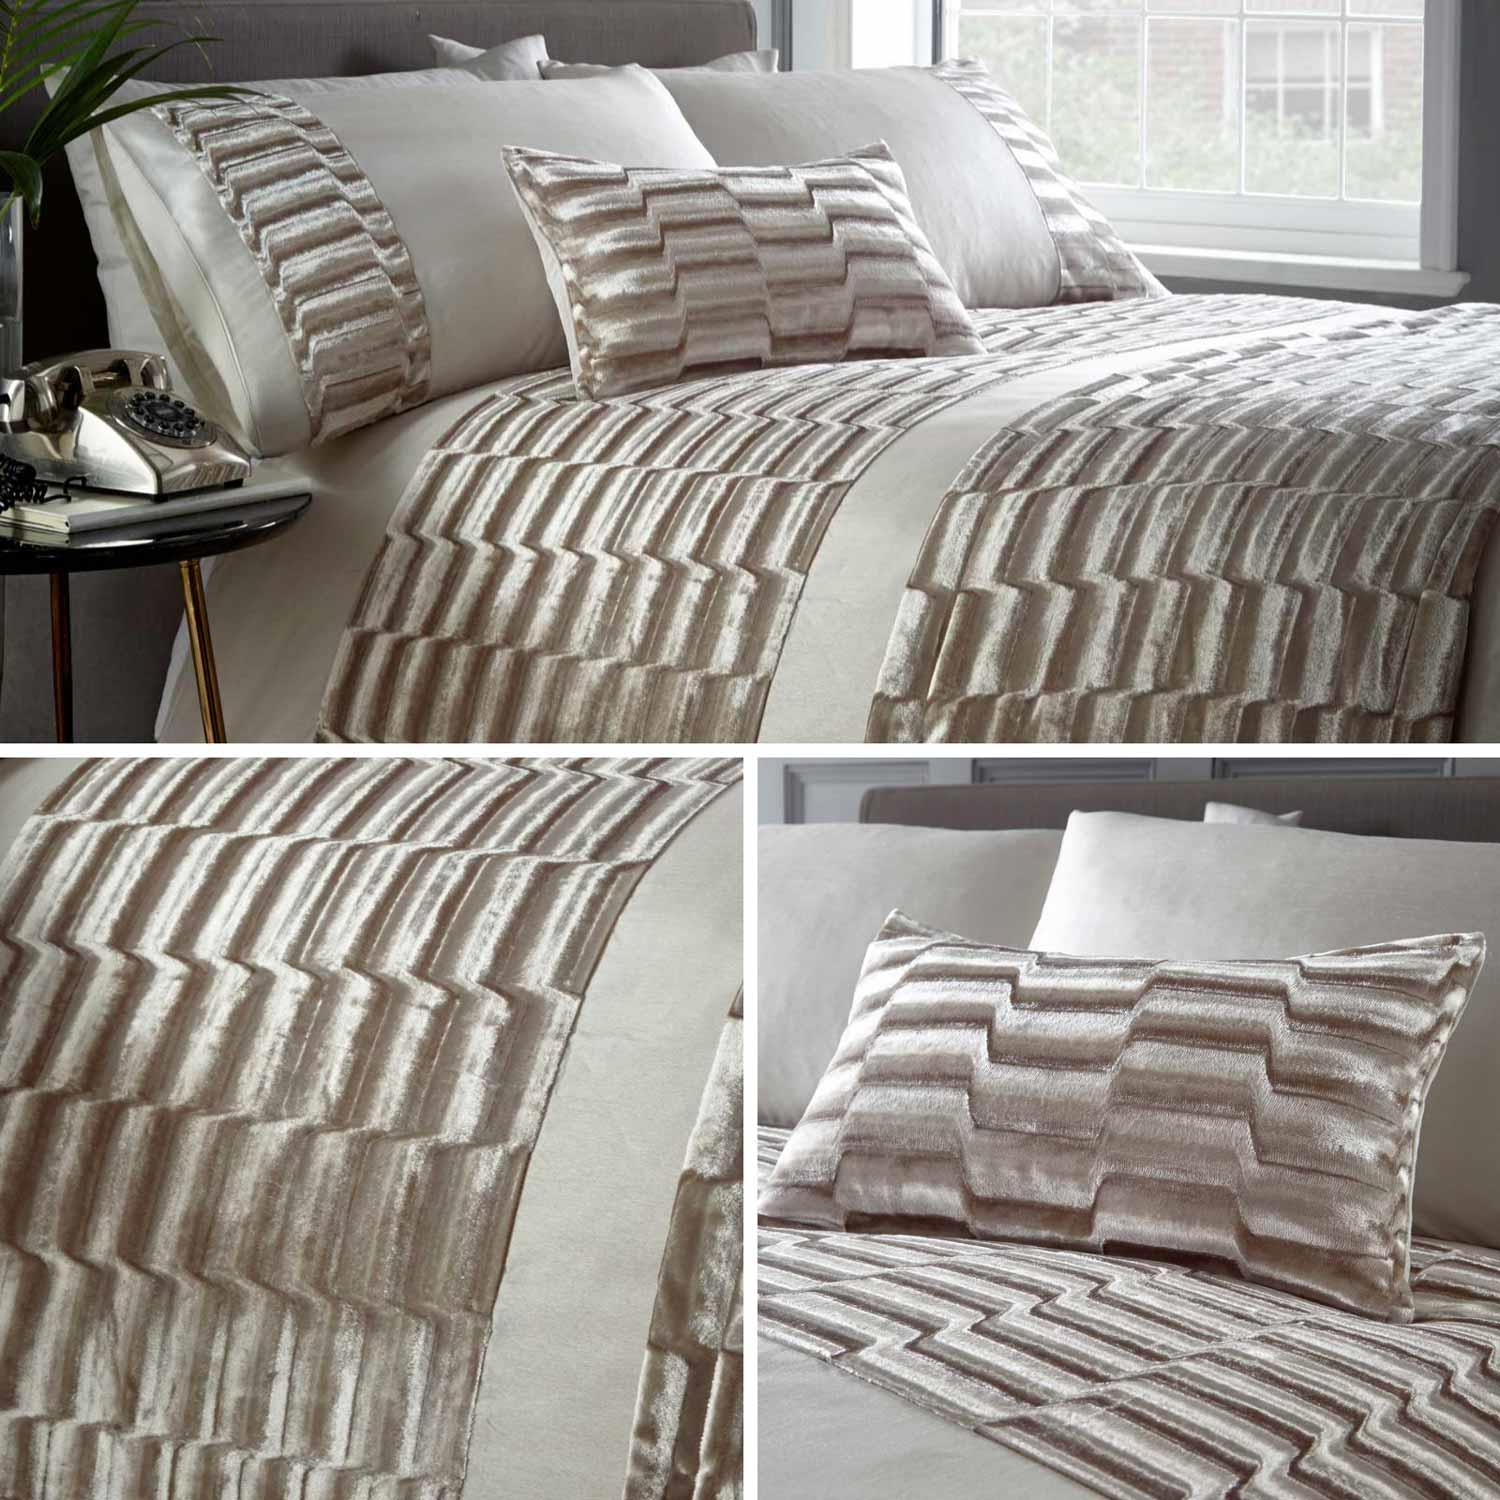 Cream Duvet Covers Luxury Crushed Velvet Glam Boudoir Quilt Cover Bedding Sets Ebay